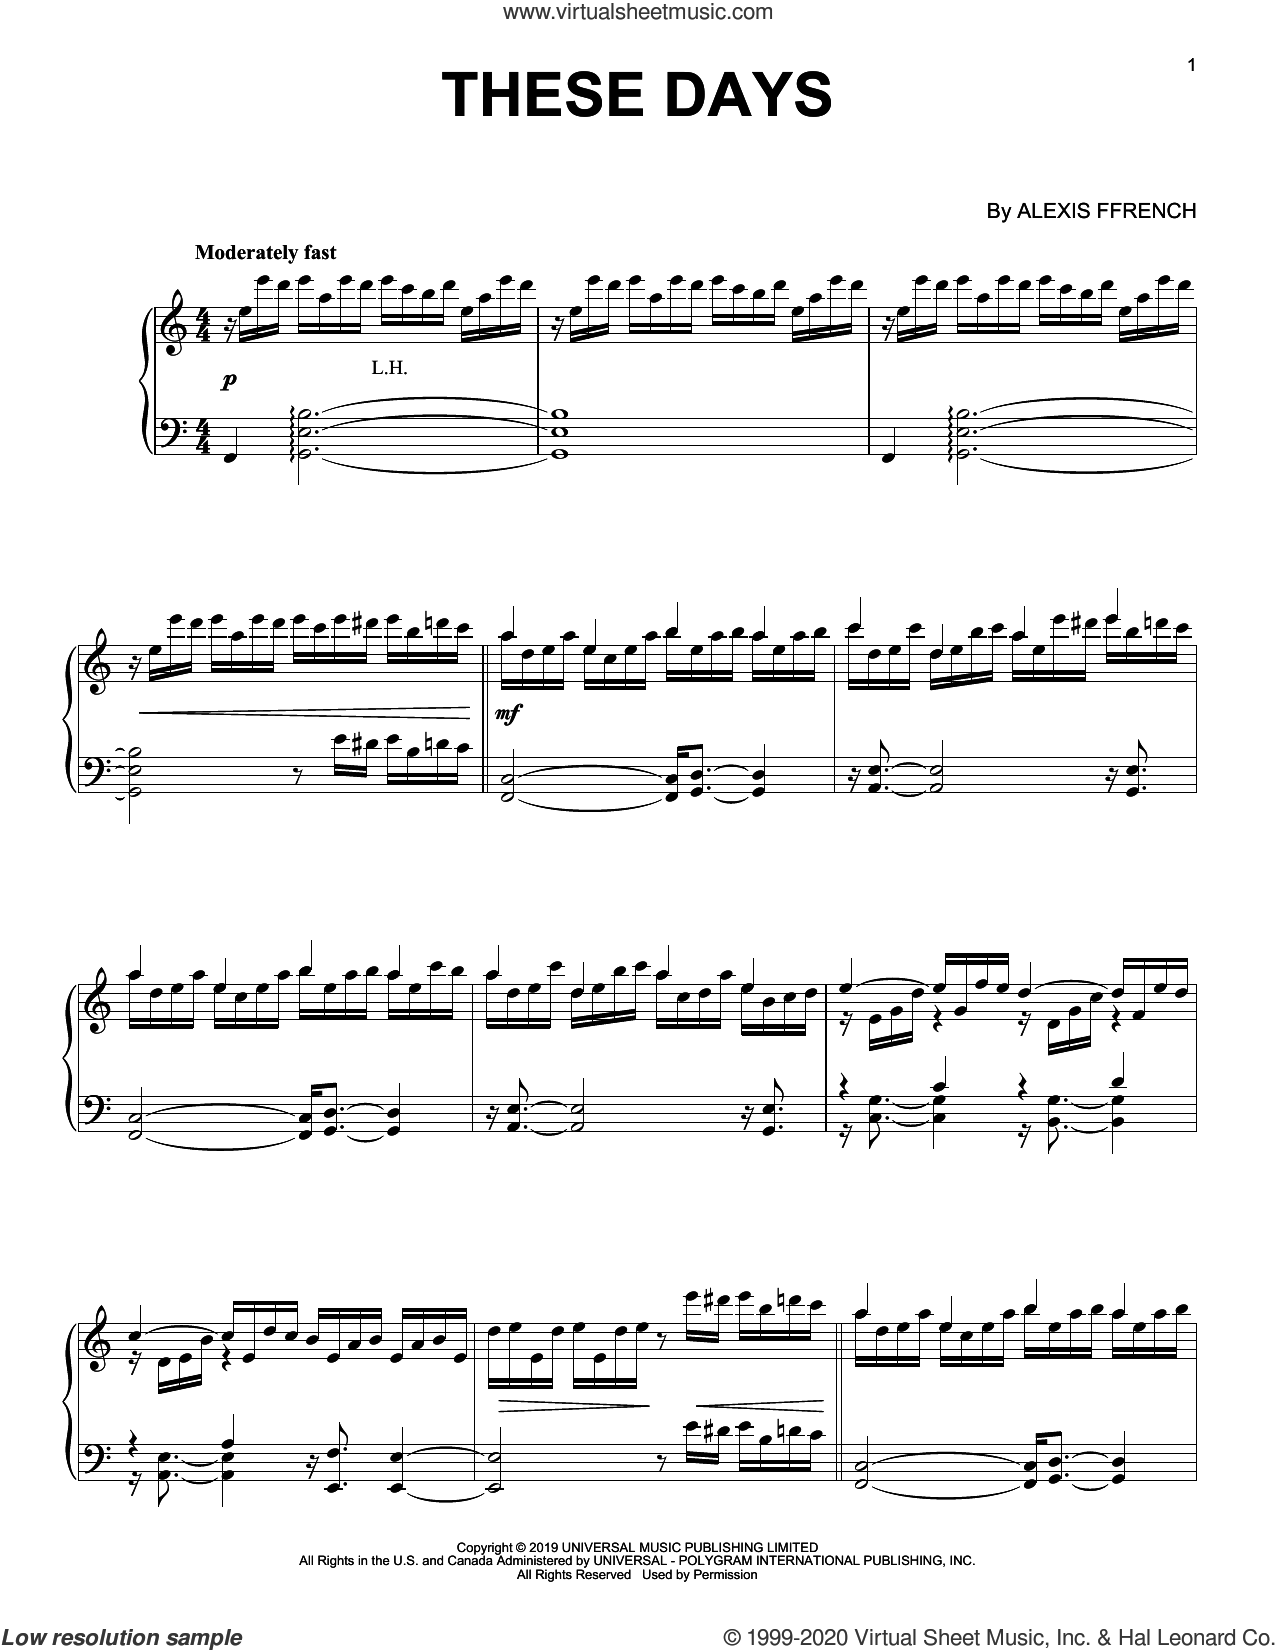 These Days sheet music for piano solo by Alexis Ffrench, intermediate skill level